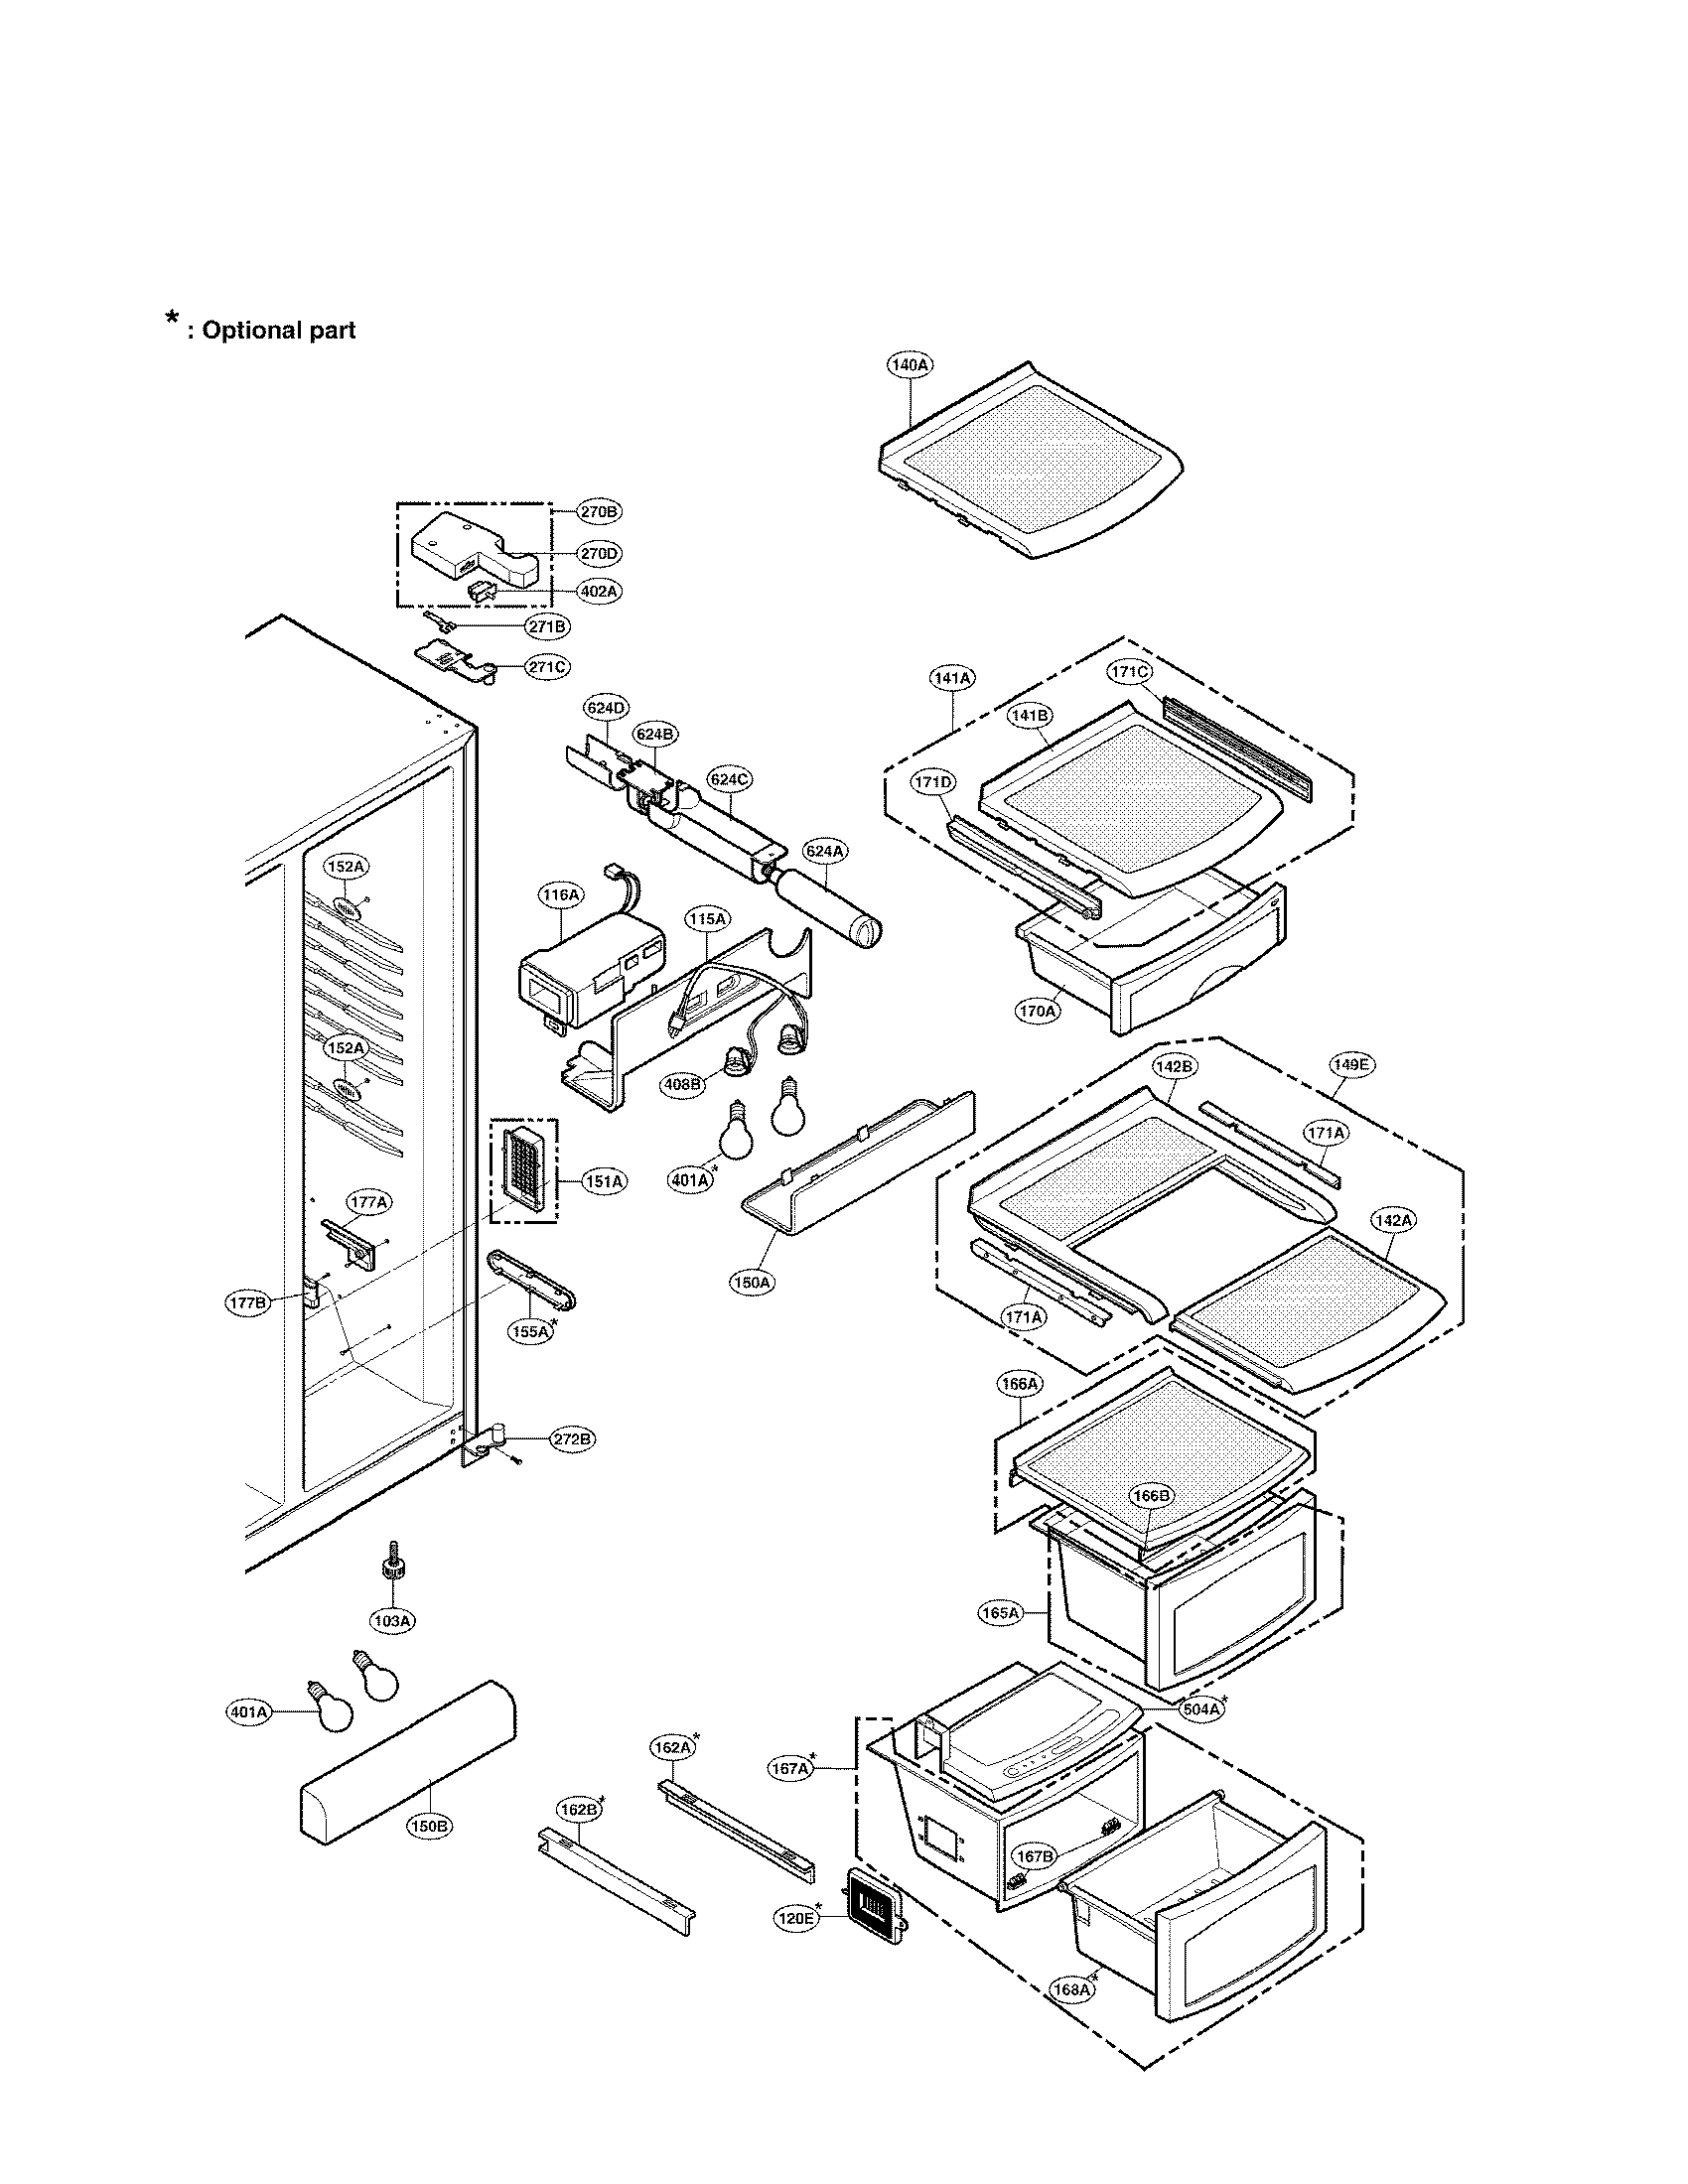 Lg model LRSC26940ST side-by-side refrigerator genuine parts